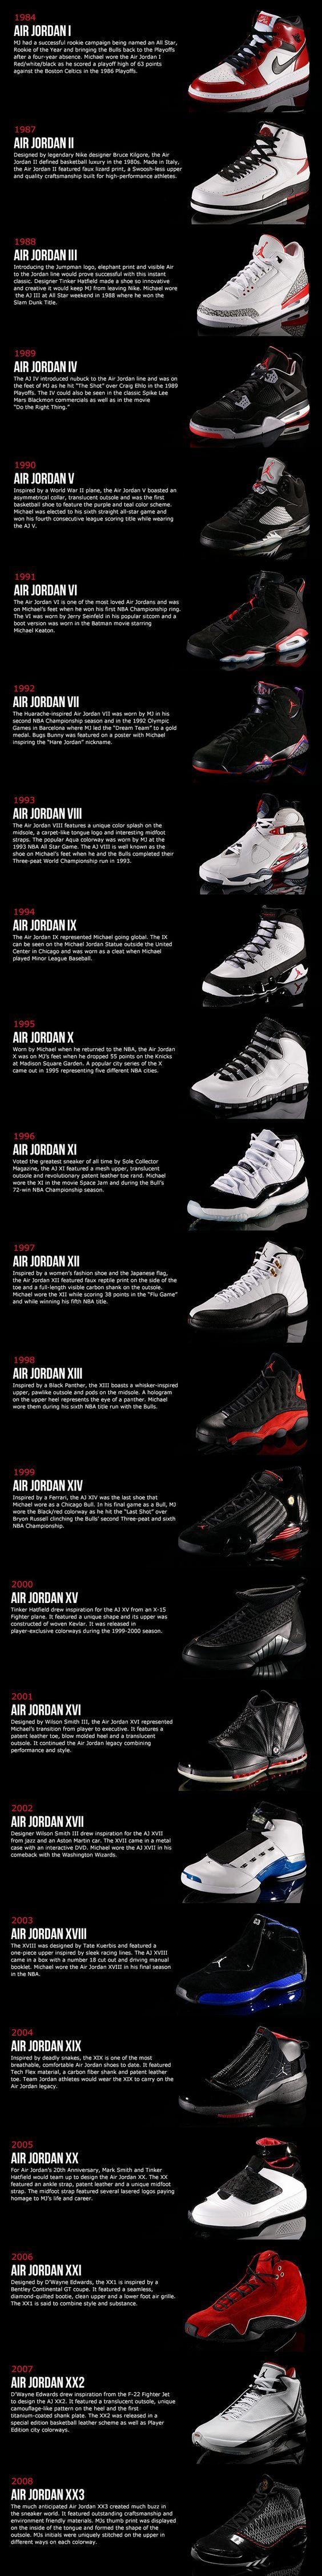 Air Jordan Collection | Sneaker boots, Air jordans, Jordans